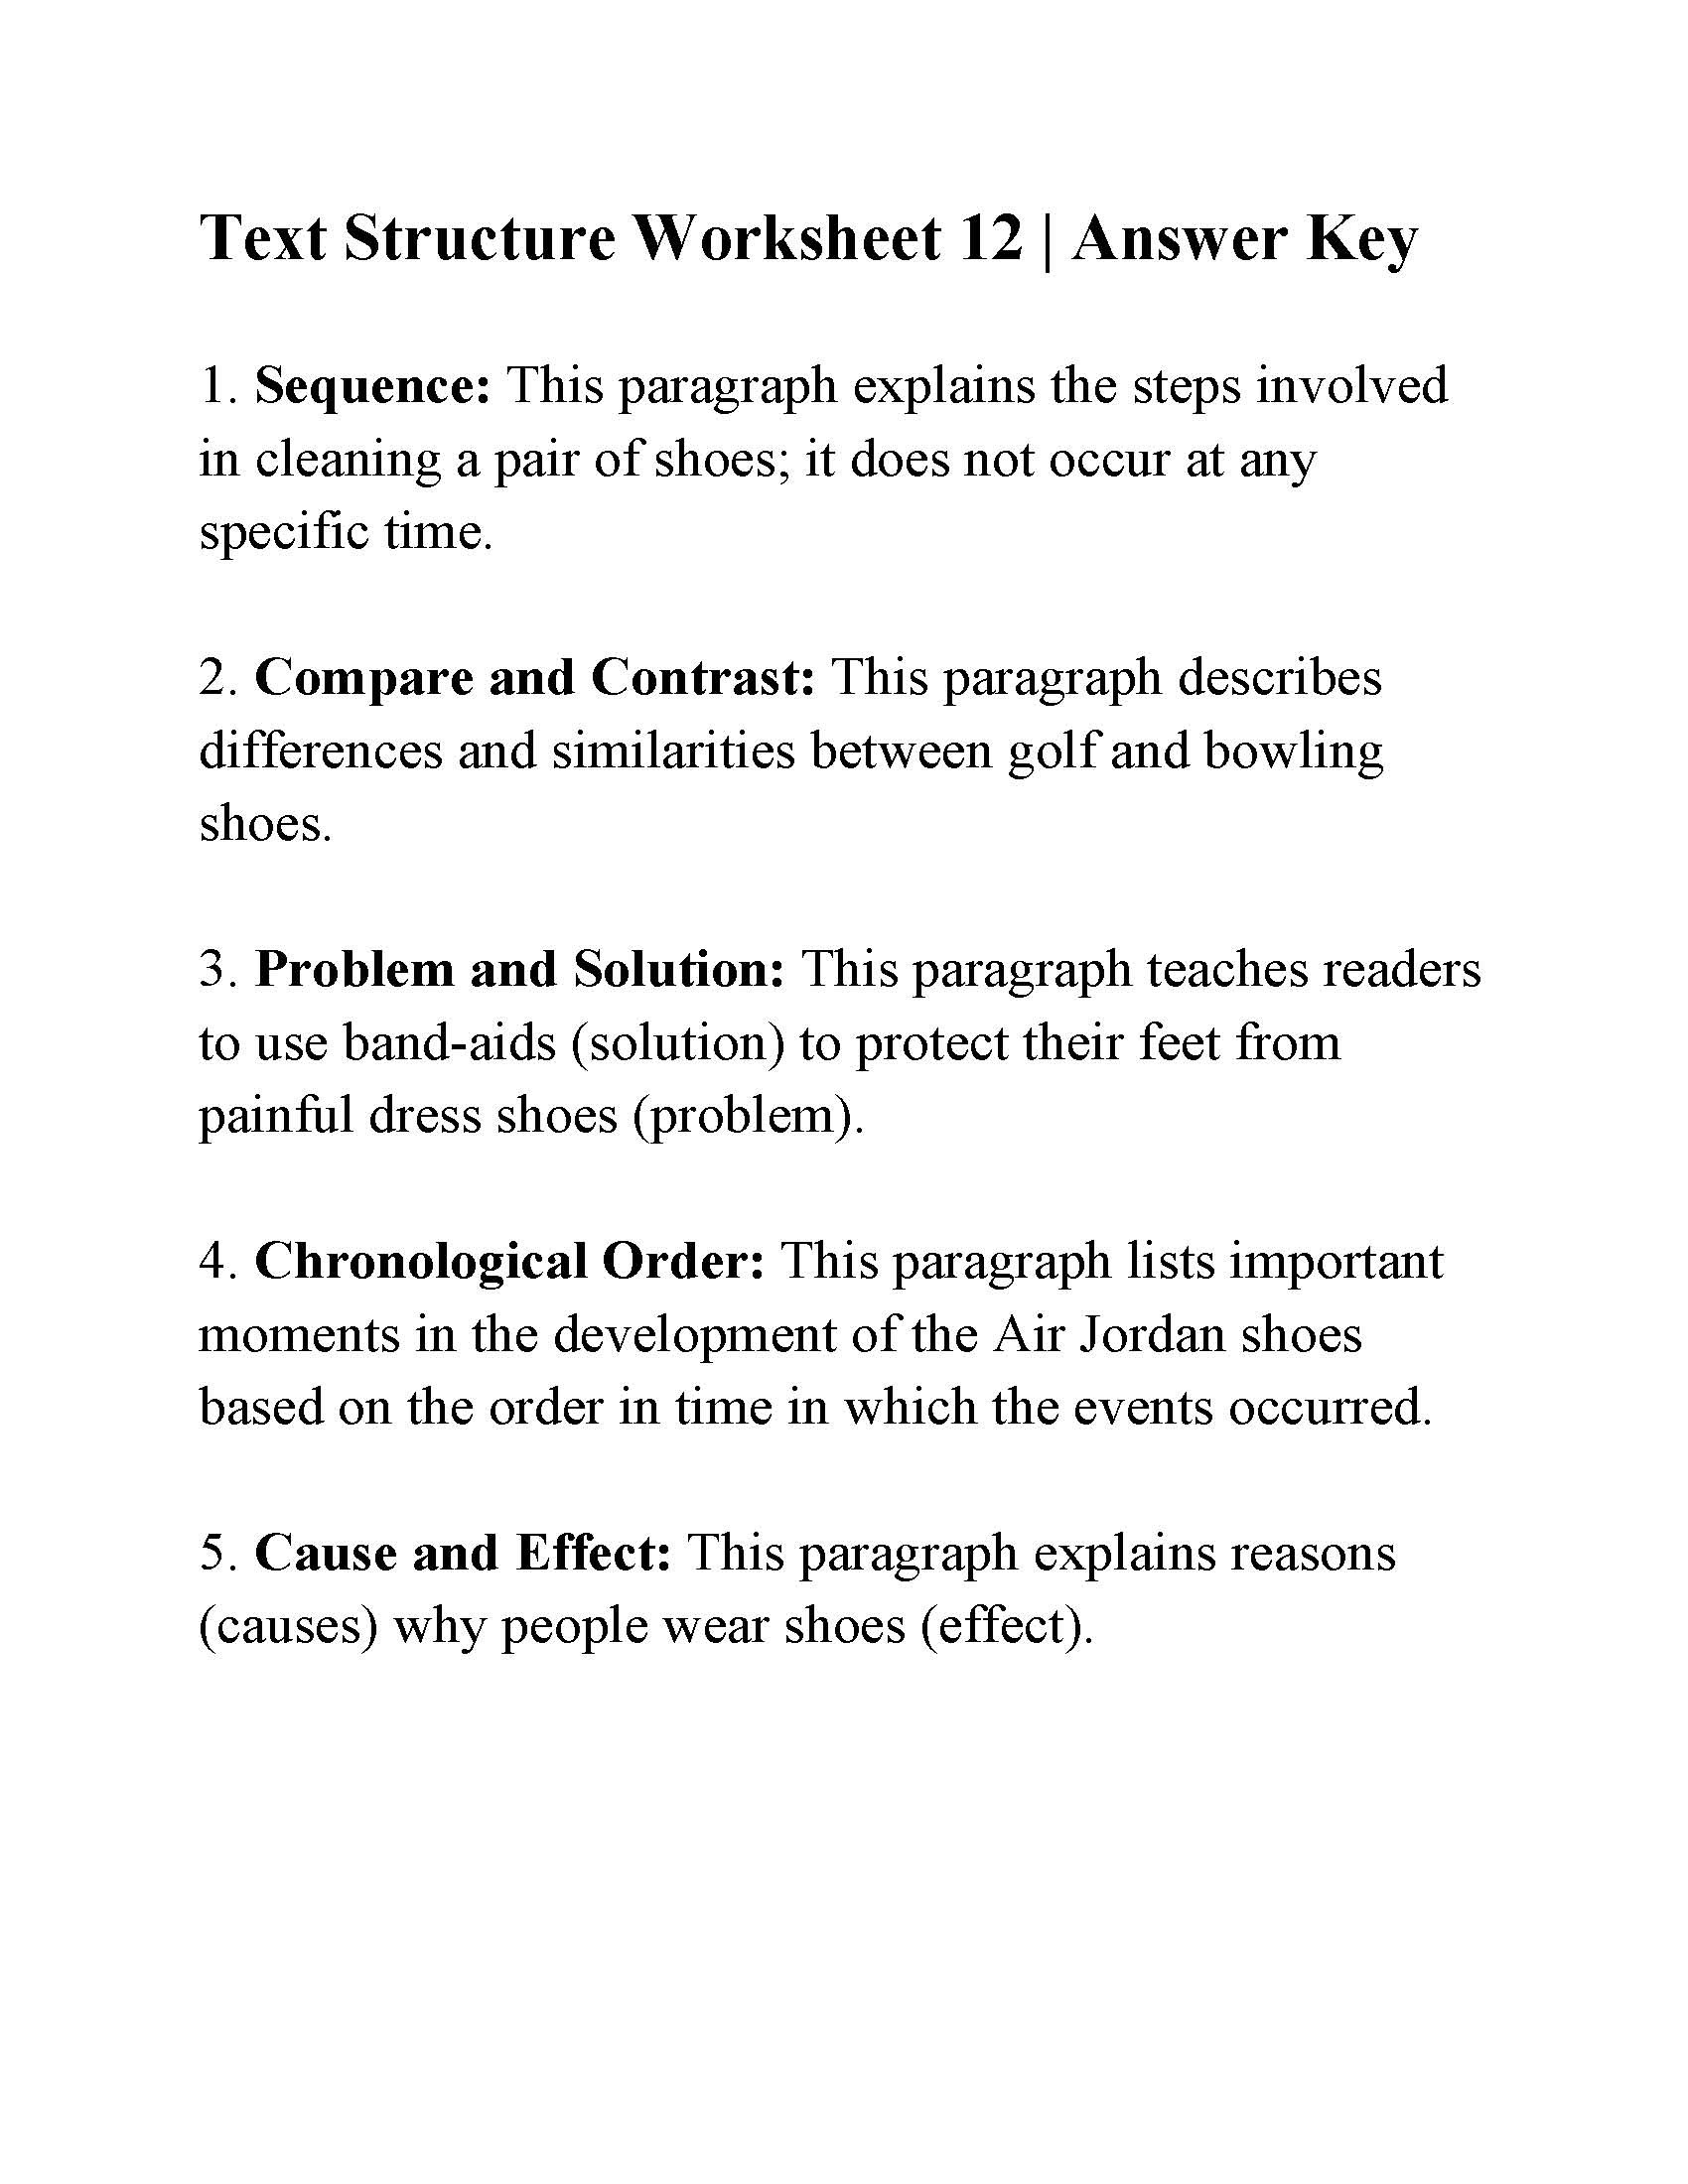 Text Structure 4th Grade Worksheets Text Structure Worksheet 12